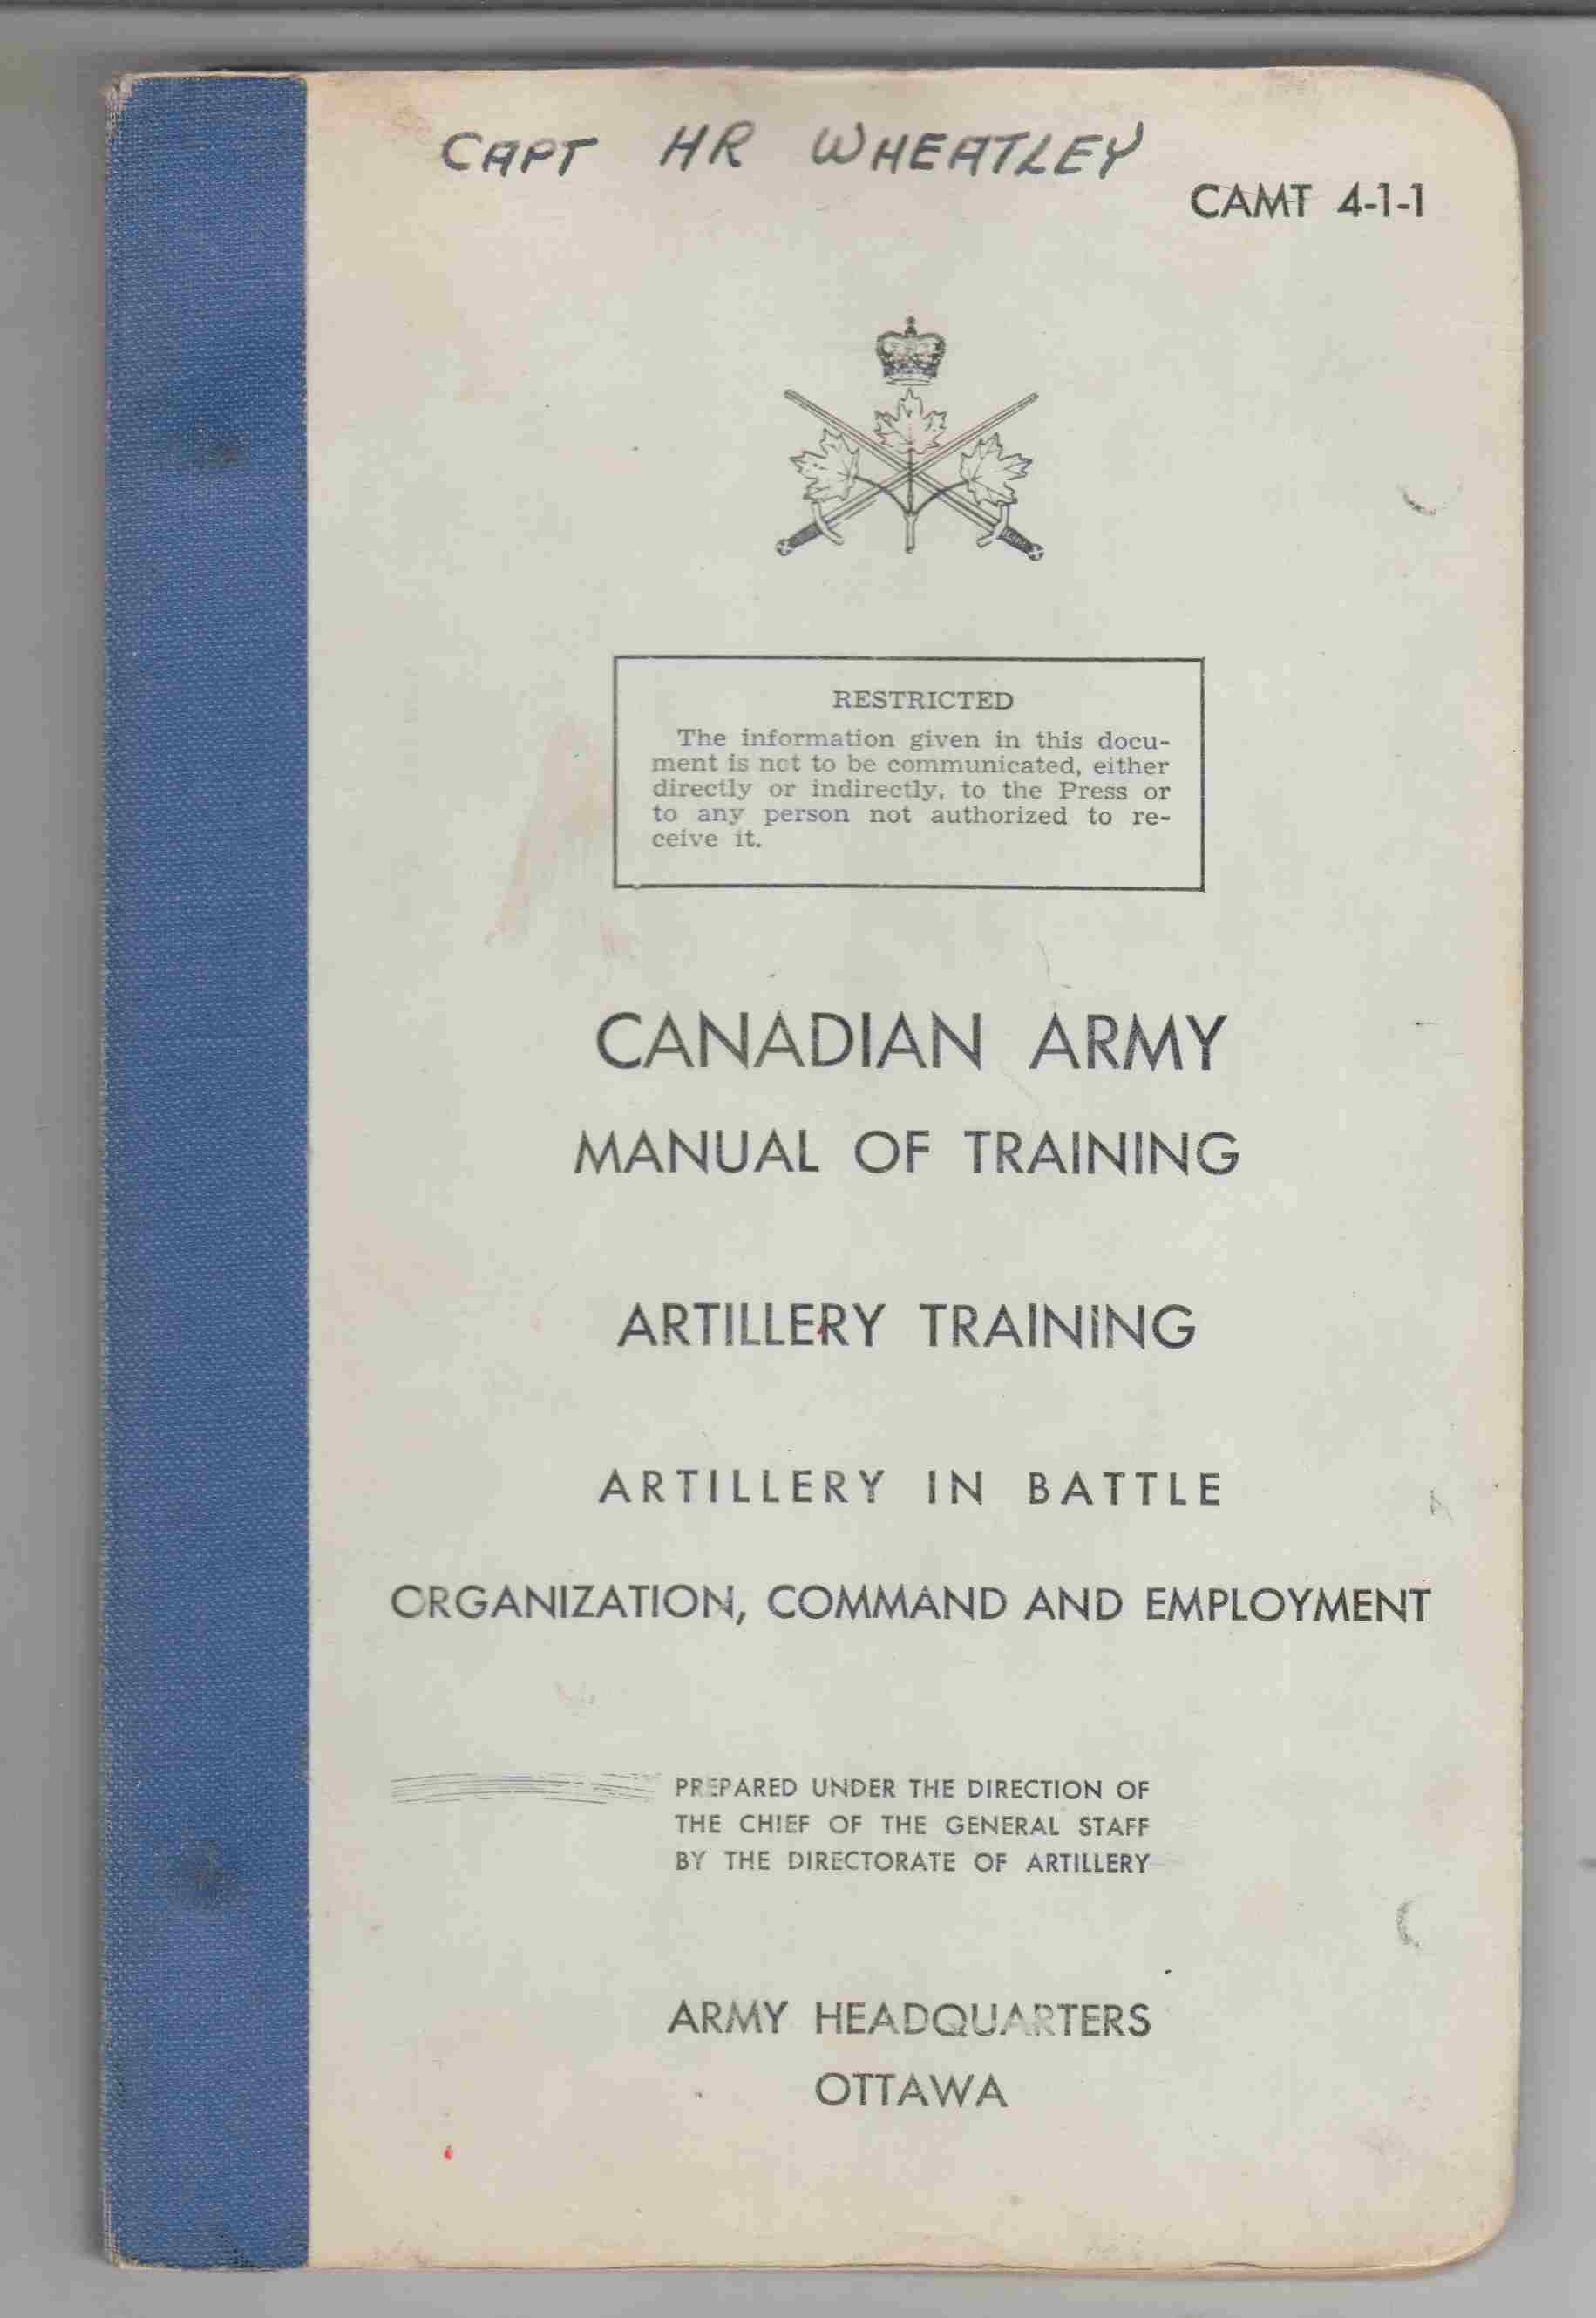 Image for Artillery Training: Artillery in Battle Organization, Command and Employment (1960)